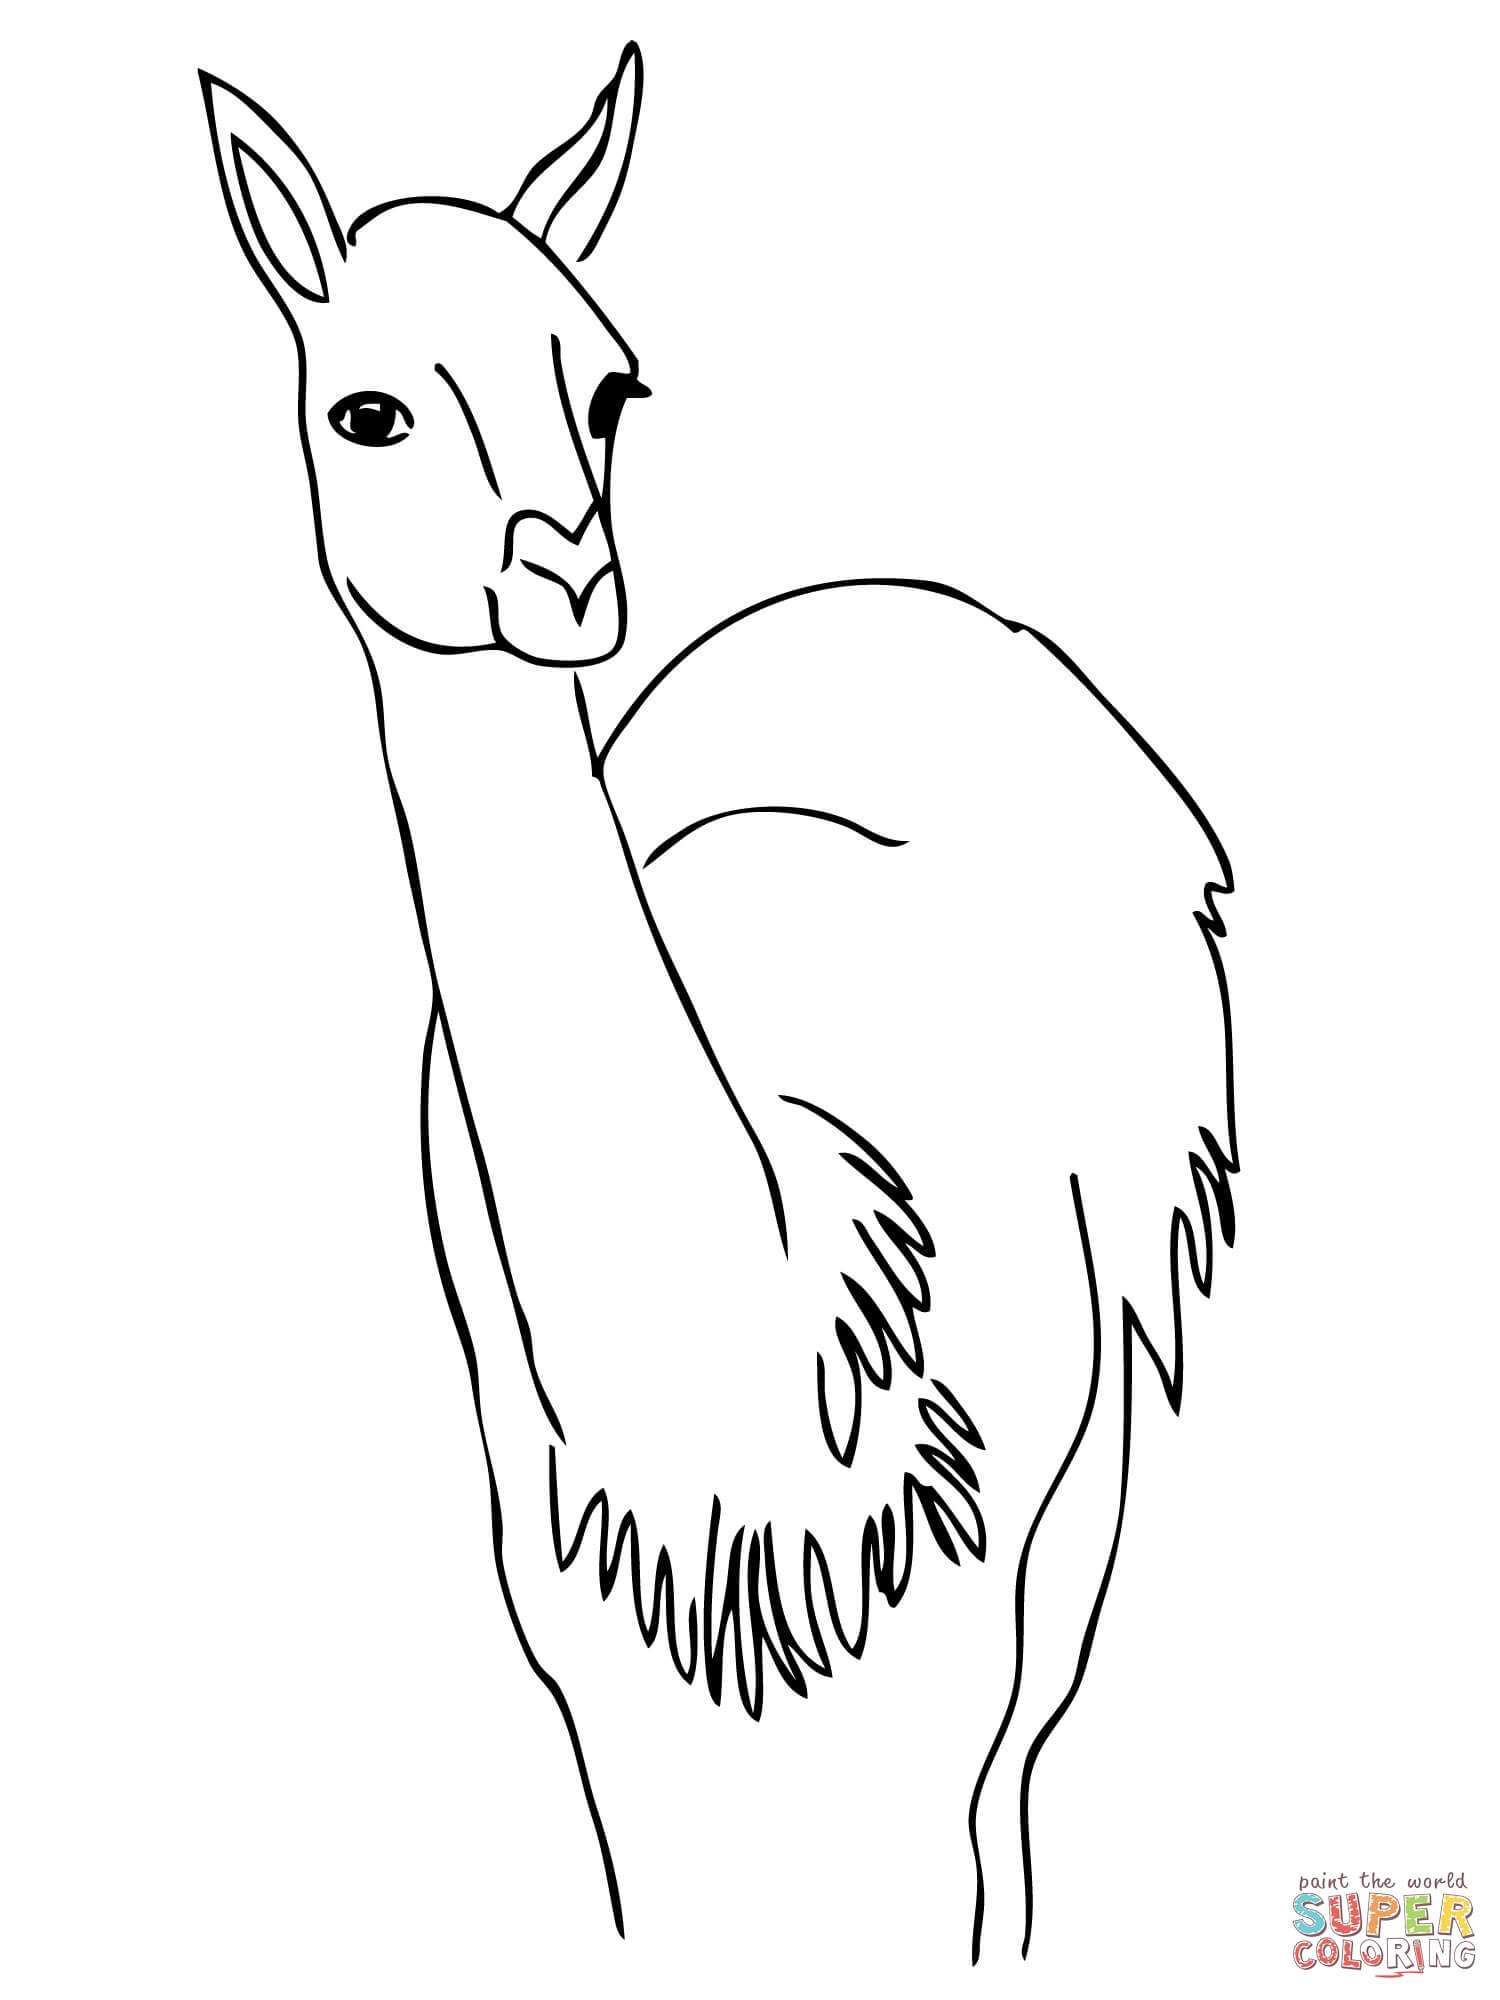 Guanaco from South America coloring page | Free Printable Coloring ...